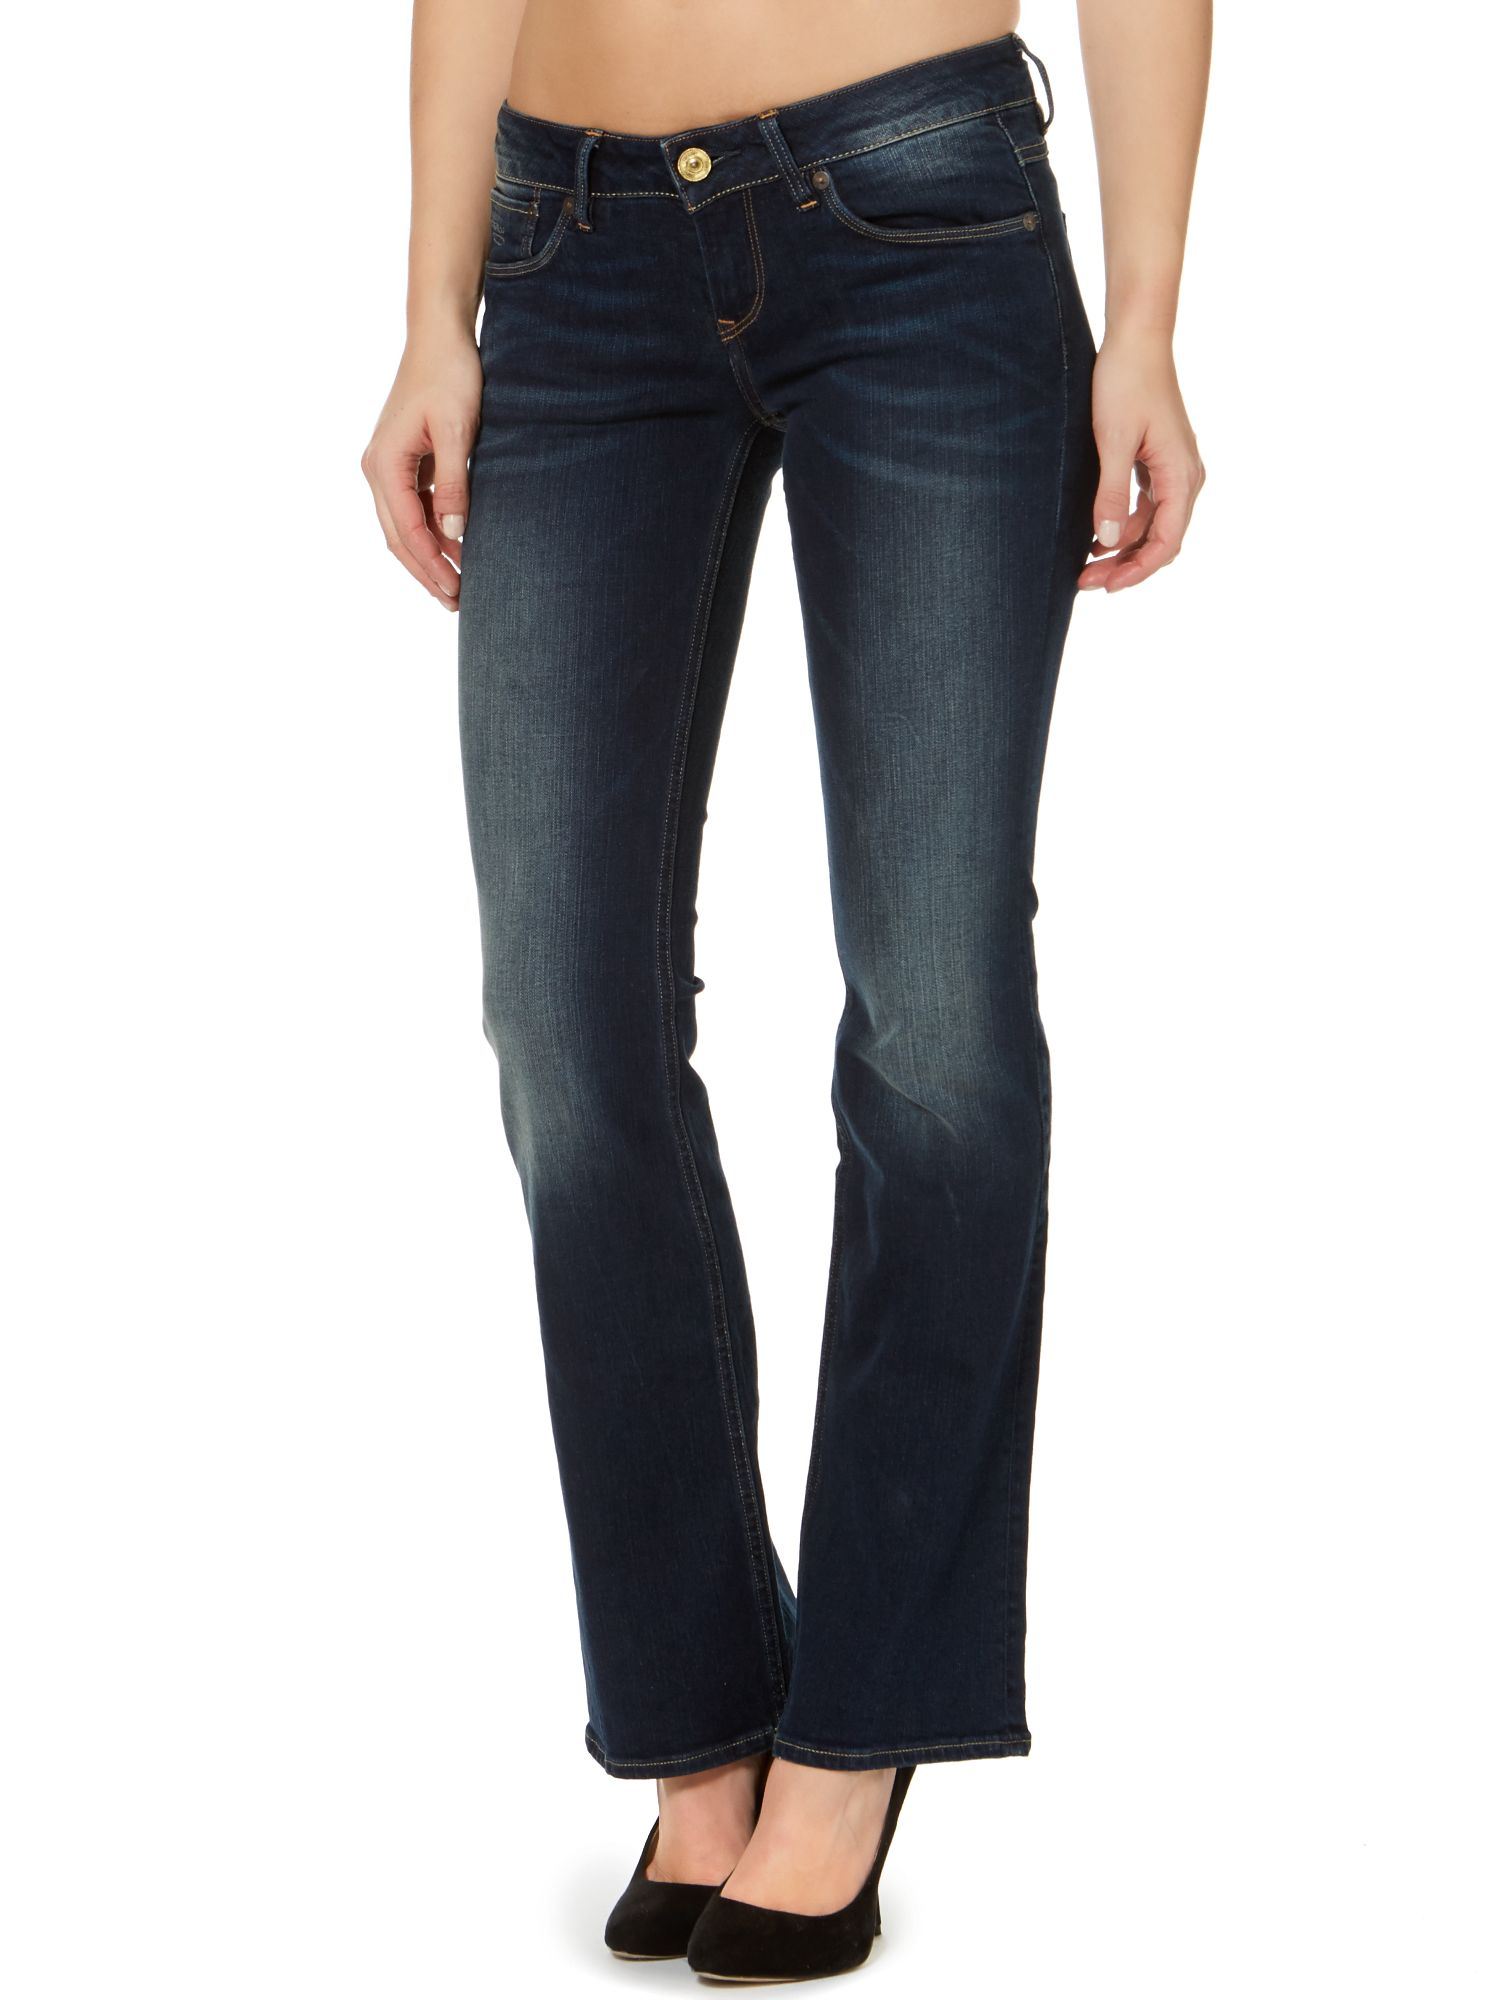 3301 bootcut jeans in comfort bloom denim